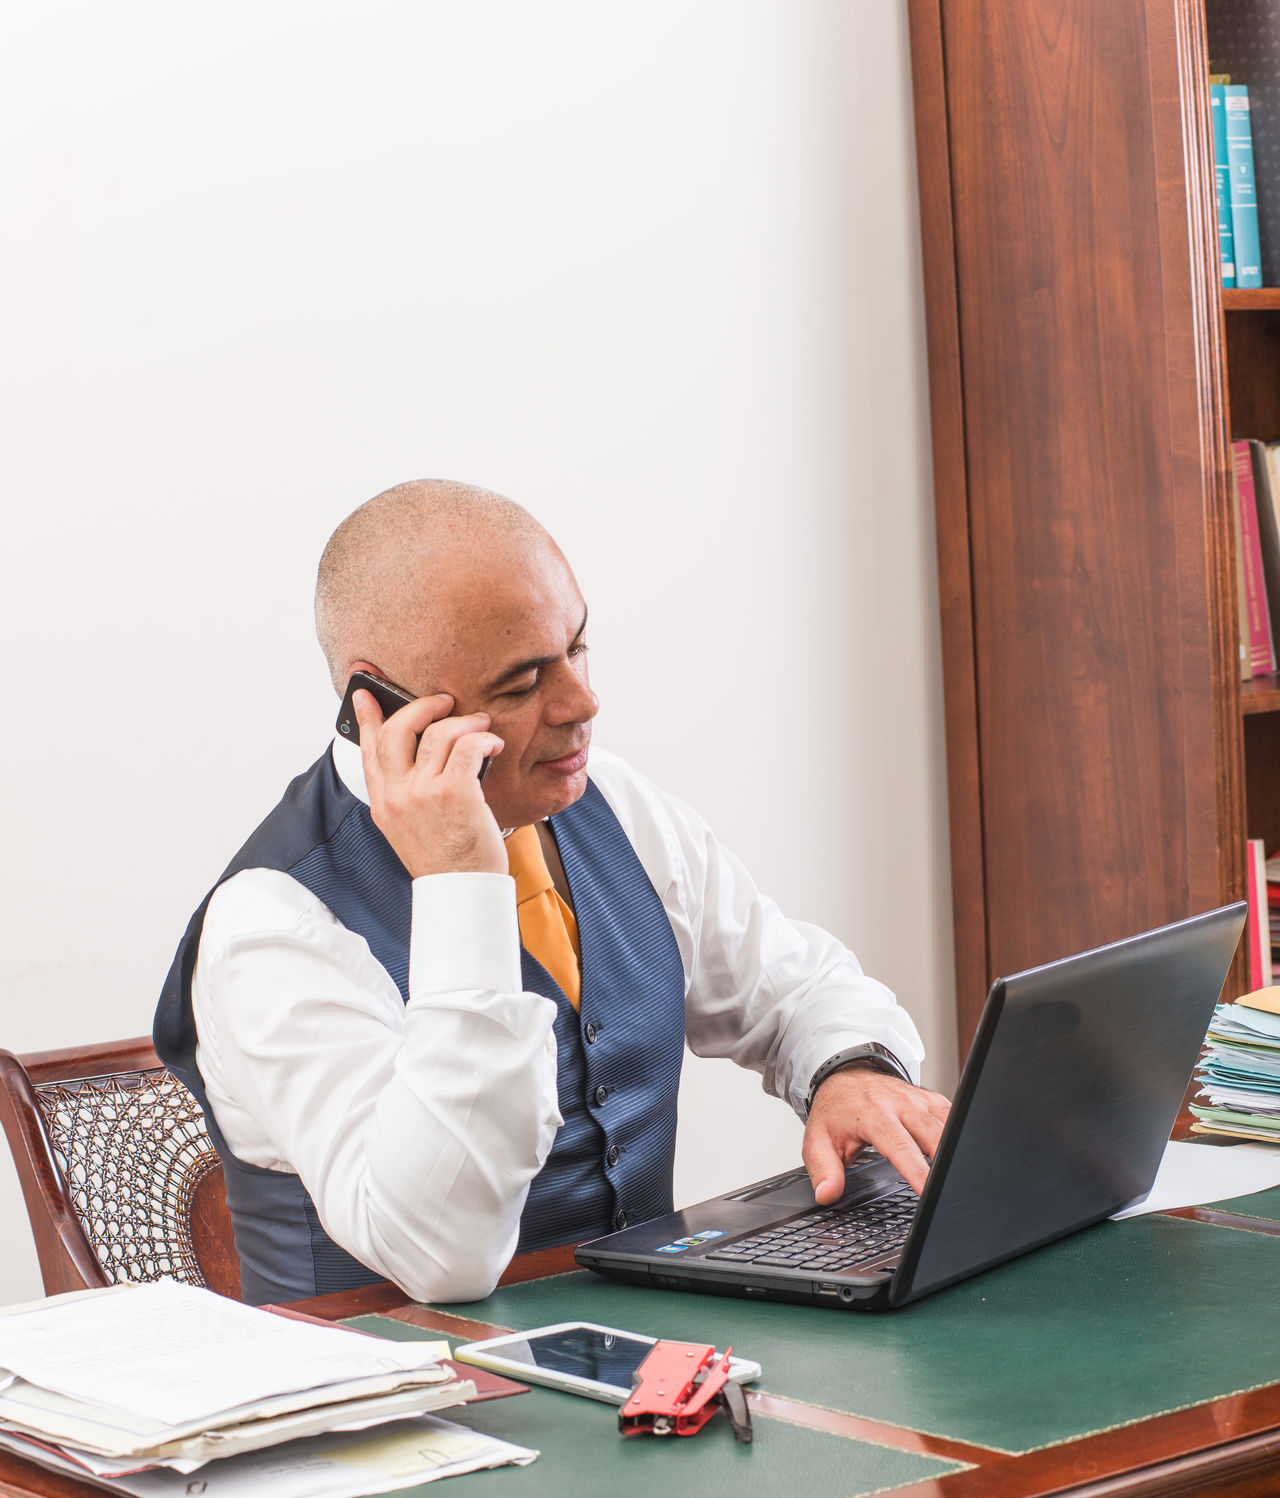 Adults Only Balding Business Business Finance And Industry Businessman Button Down Shirt Completely Bald Connection Desk Eyeglasses  Hair Loss Internet Laptop Mature Adult Mature Men Men One Man Only One Mature Man Only One Person Only Men Shaved Head Sitting Technology Using Laptop Wireless Technology